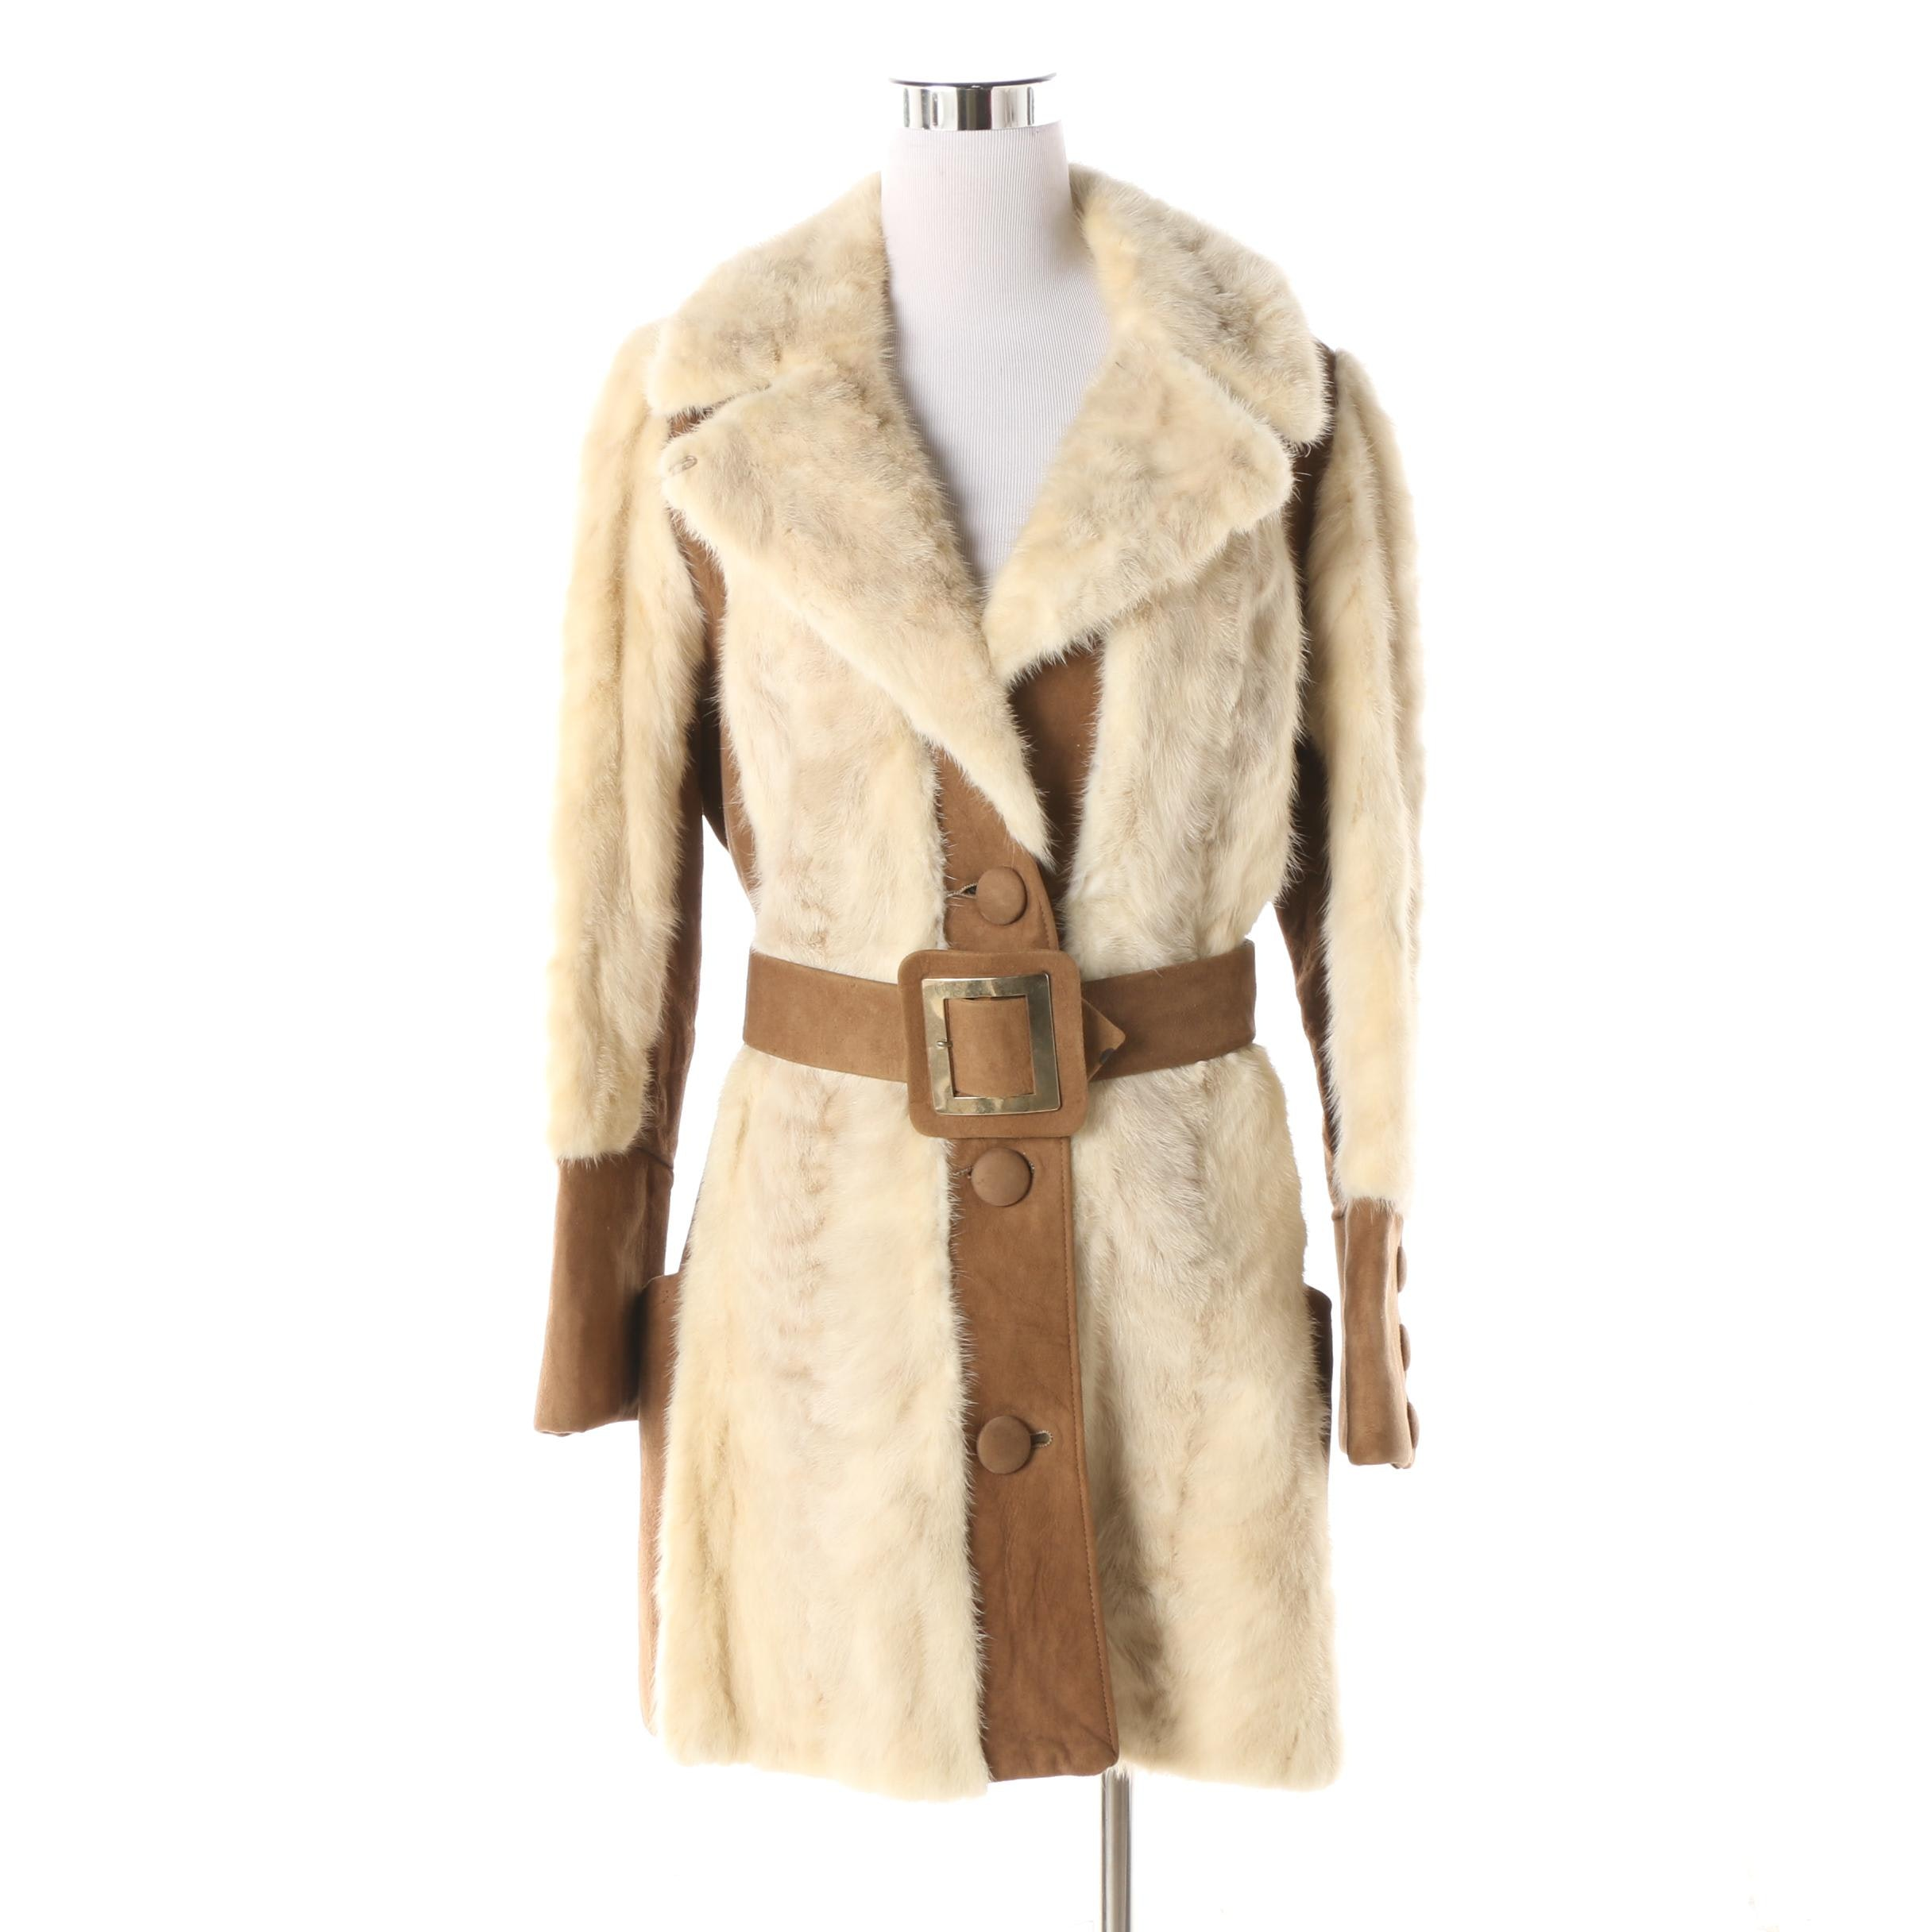 1970s Ermine Fur and Suede Leather Coat with Scallop Cuff and Pocket Detail